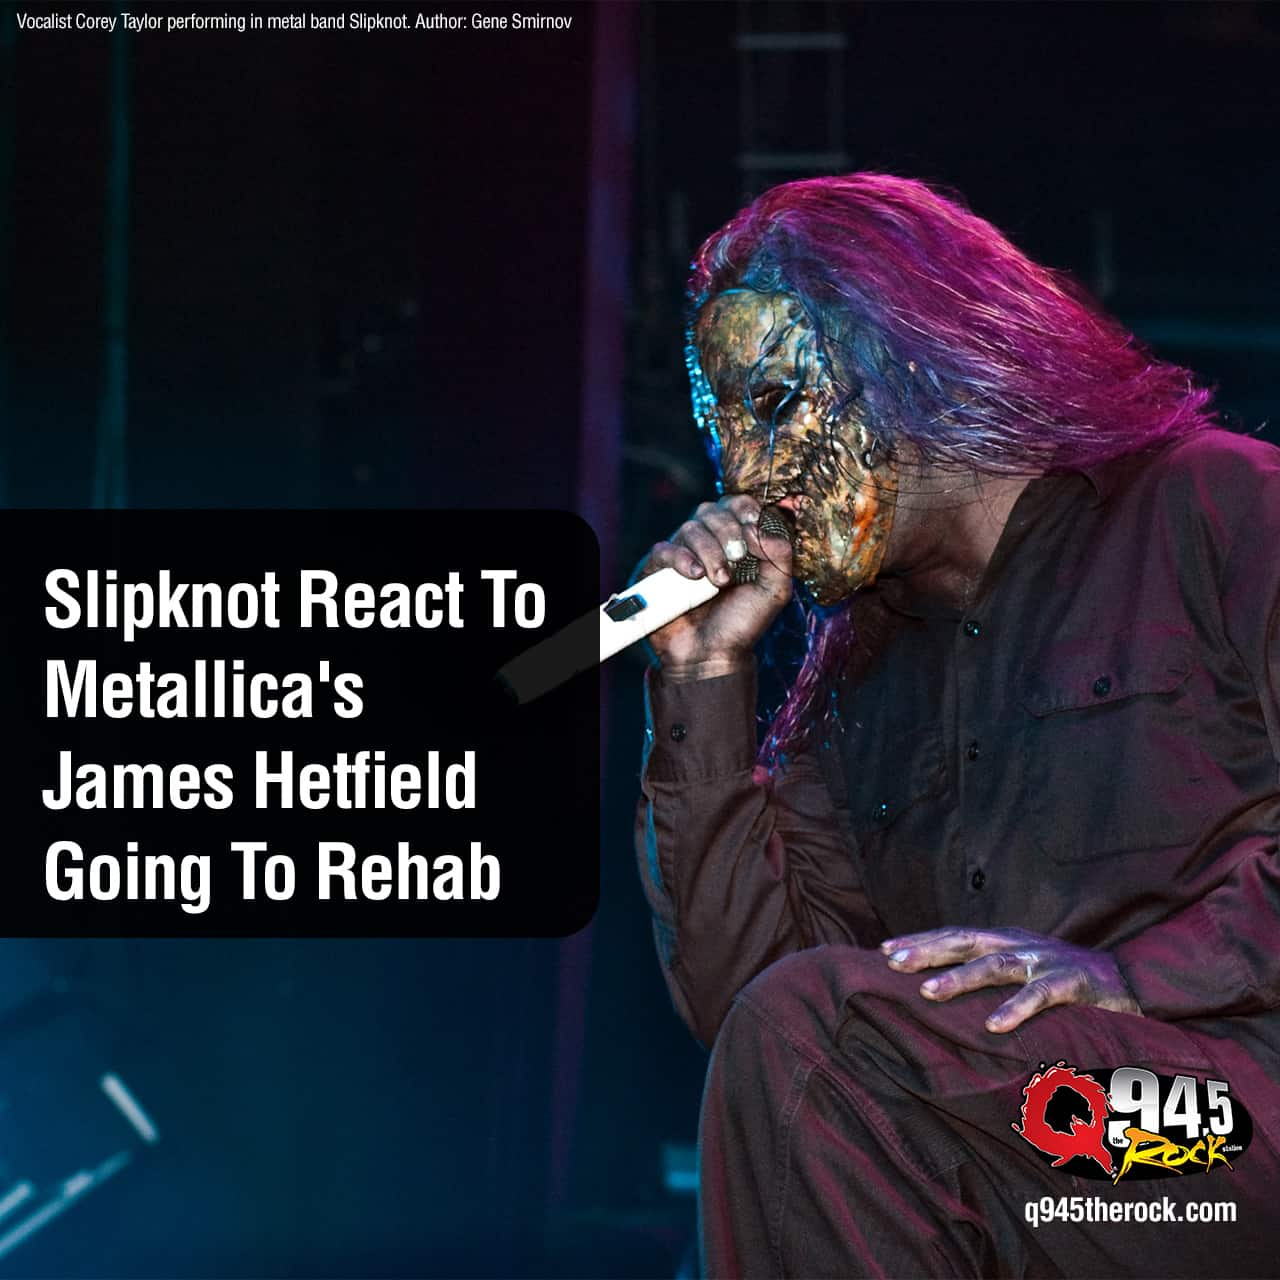 Slipknot shared a statement on social media after Metallica frontman James Hetfield entered rehab for addiction, forcing the postponement of their upcoming tour Down Under.